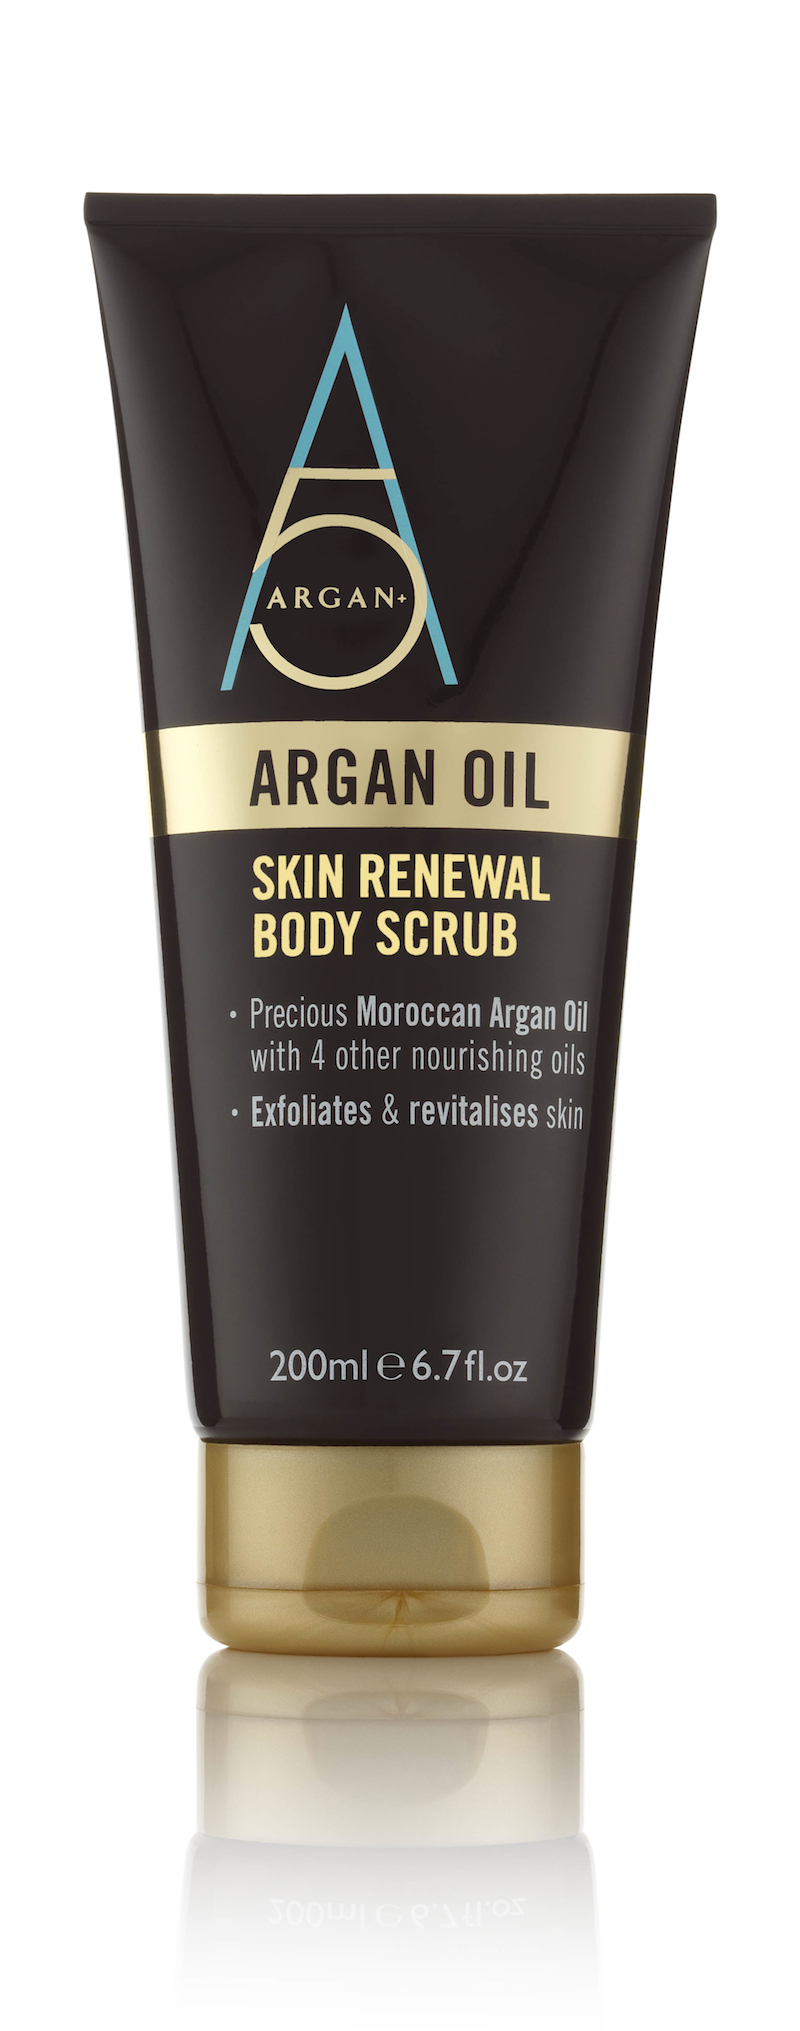 Argan-Skin-Renewal-Body-Scrub.jpg